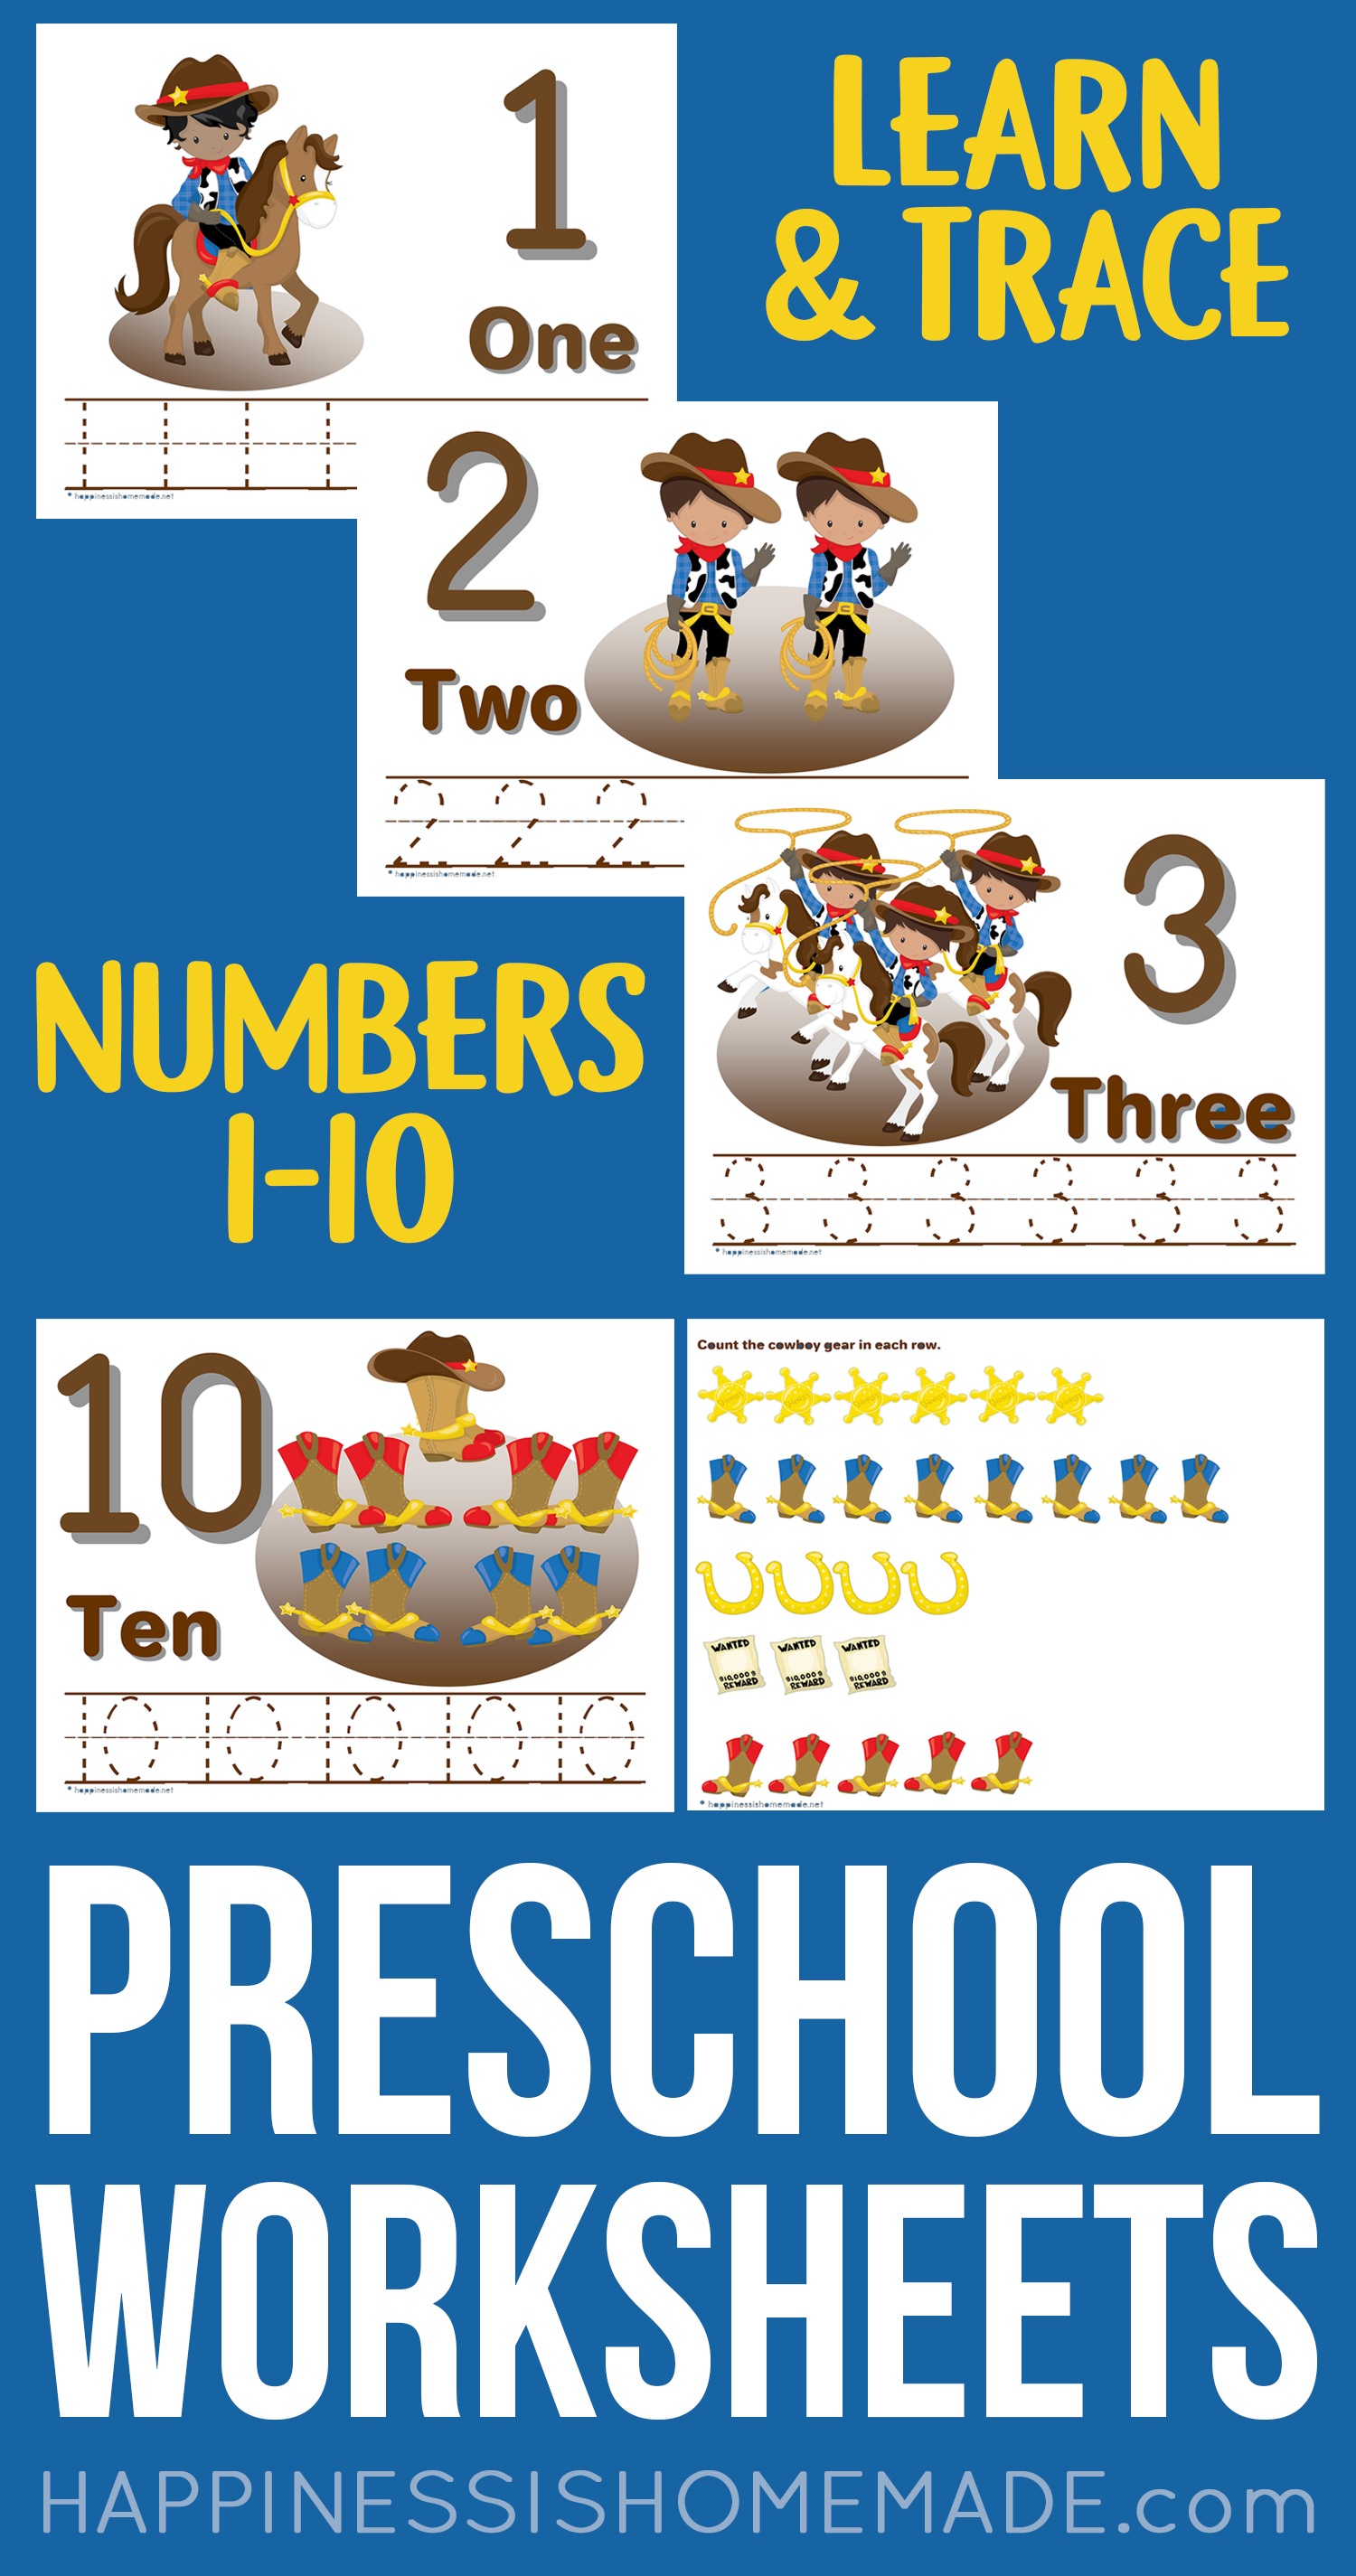 Preschool Worksheets Counting Number Tracing Worksheets Happiness Is Homemade